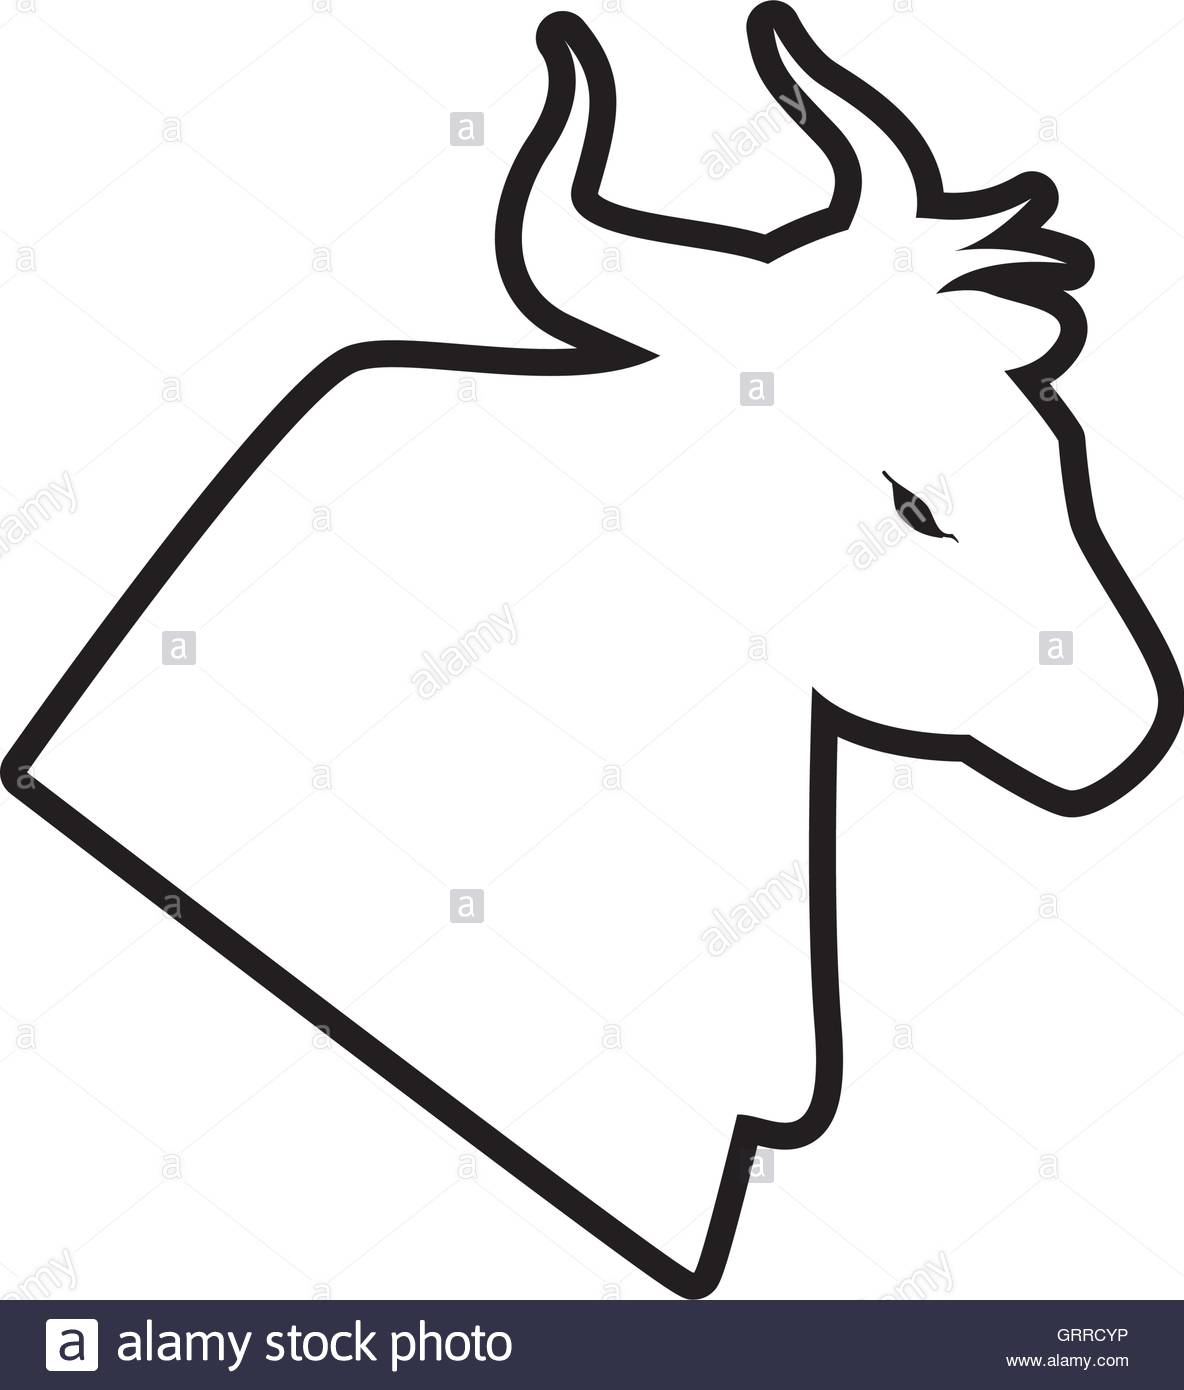 1184x1390 Bull Horn Animal Silhouette Farm Icon. Vector Graphic Stock Vector